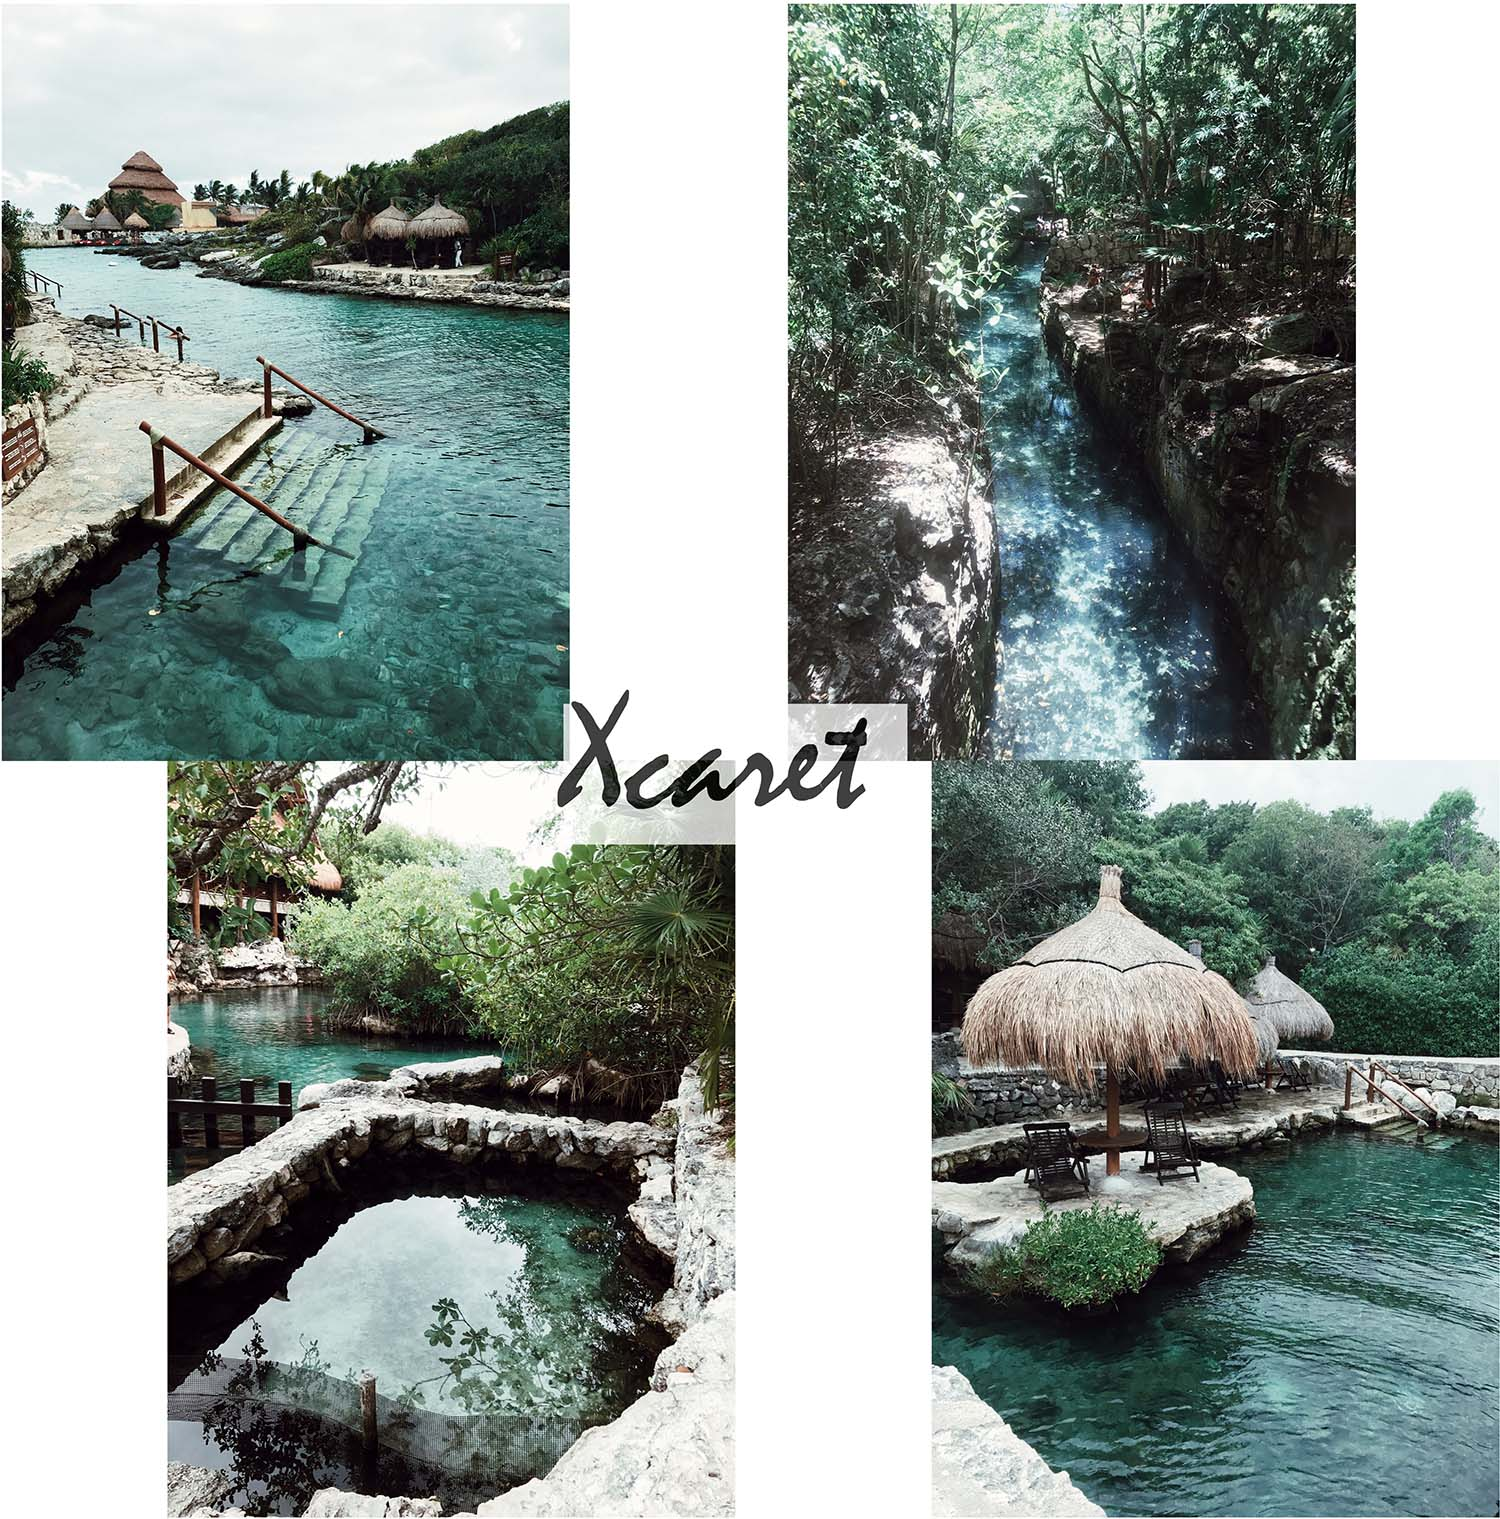 cancun, mexico, travel, trip, vacation, vacay, travel blogger, traveler, bloglovin, melrodstyle, melrodbrb, beautiful destination, dame traveler, isla mujeres, xcaret, coconuts, corona, island, beach, hammocks, bikini,